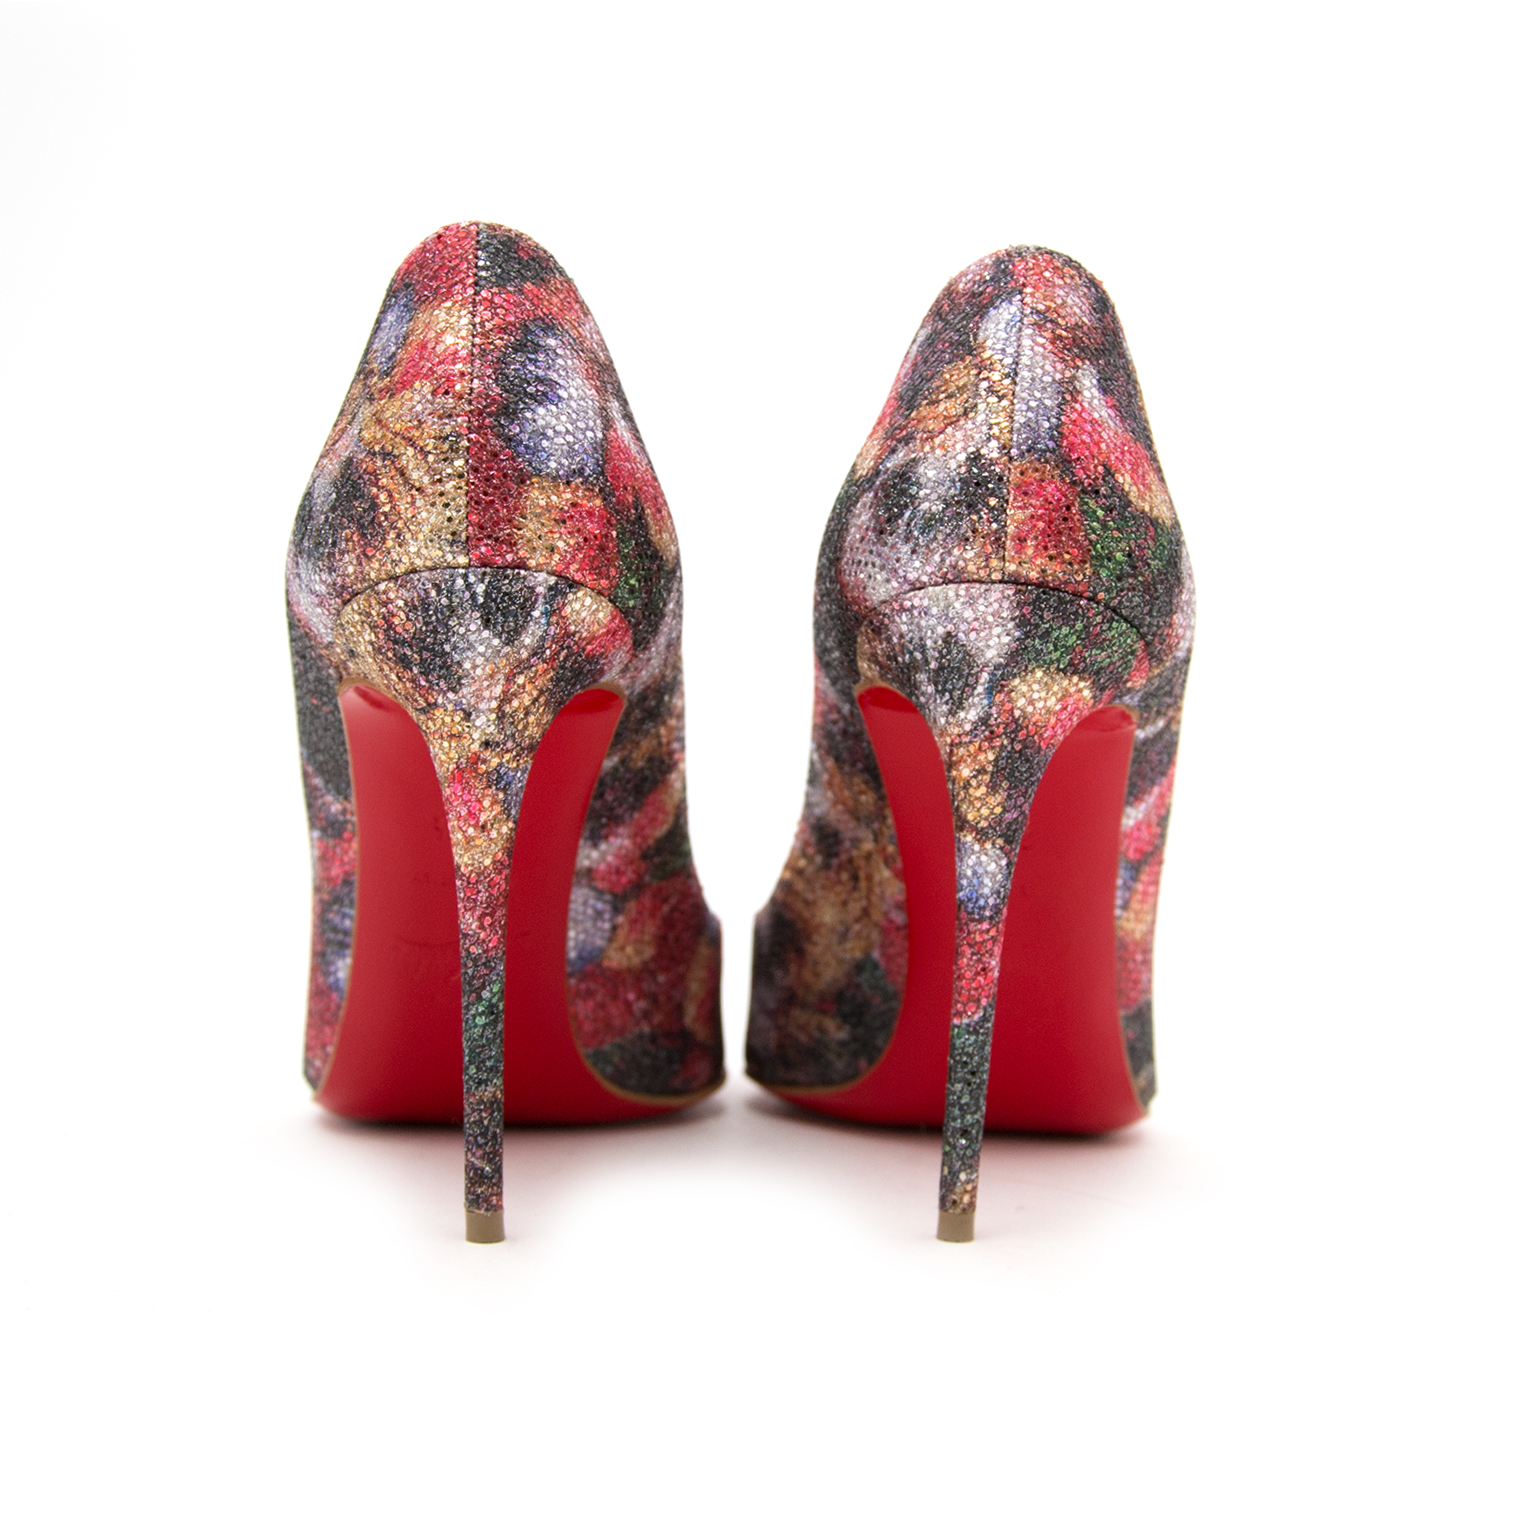 Louboutin in Antwerp for the best price at Labellov online store